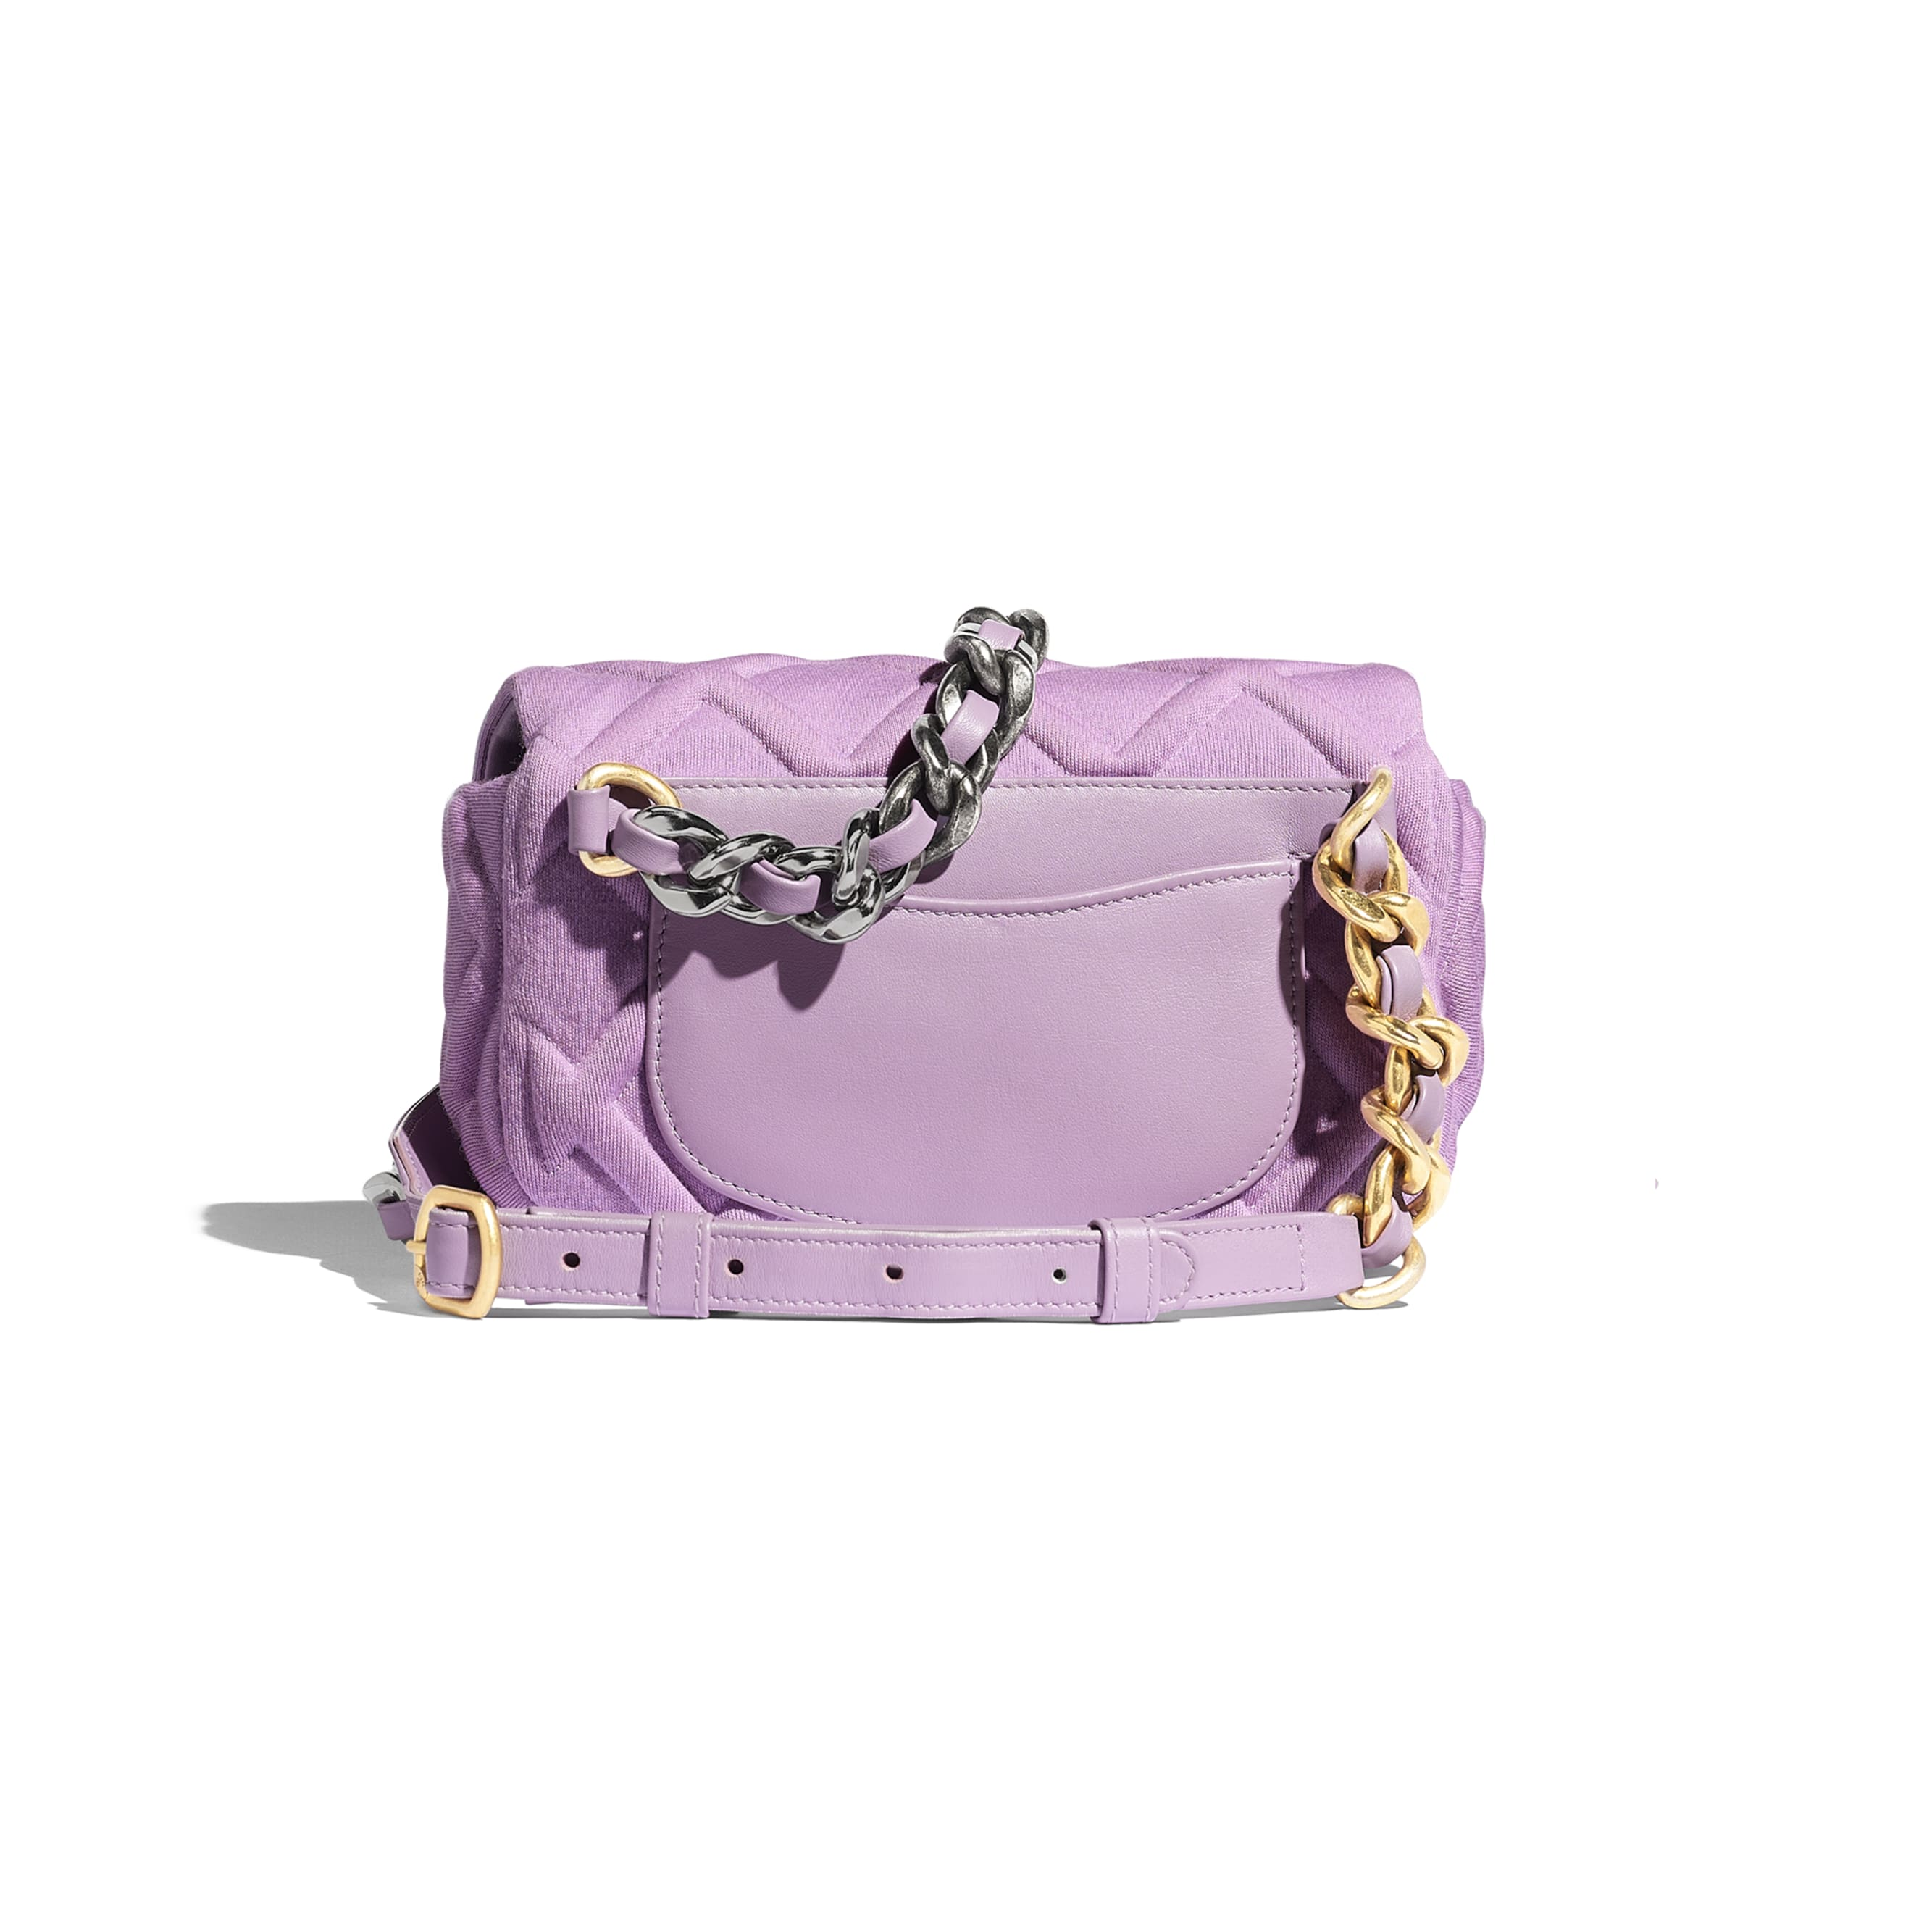 CHANEL 19 Waist Bag - Mauve - Jersey, Gold-Tone, Silver-Tone & Ruthenium-Finish Metal - Alternative view - see standard sized version